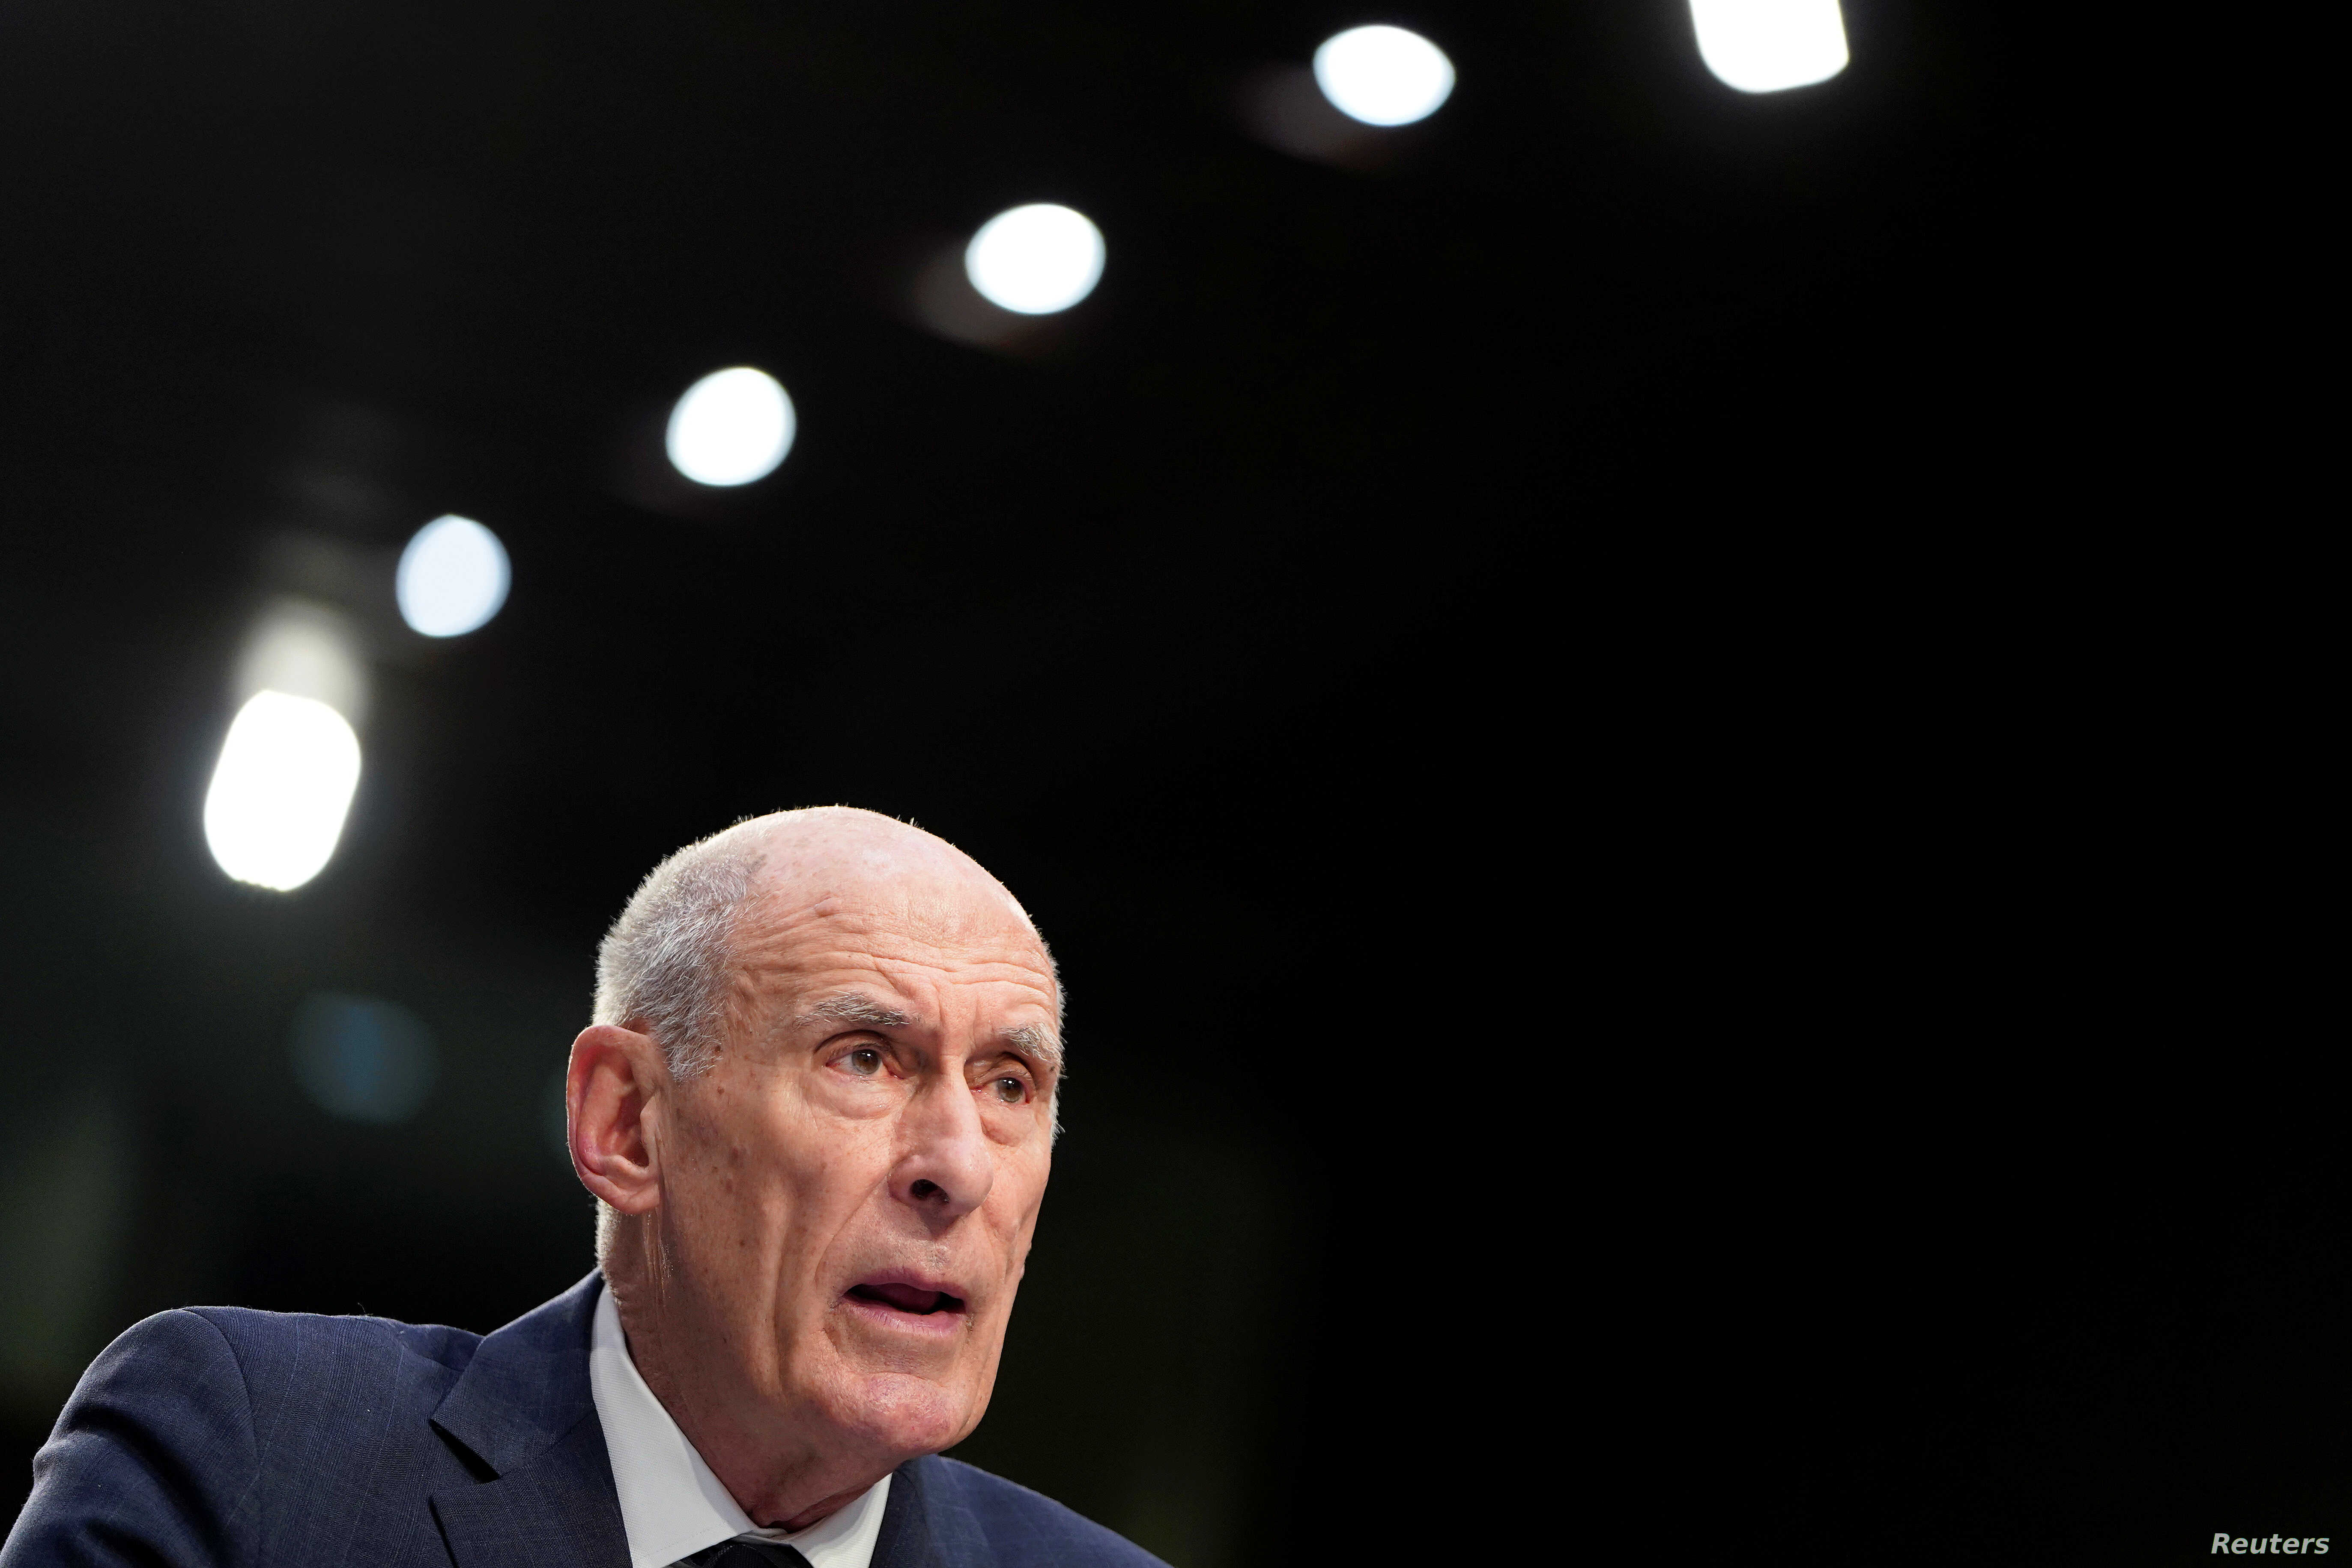 Director of National Intelligence Dan Coats testifies before the Senate Intelligence Committee hearing about worldwide threats, on Capitol Hill, in Washington, Jan. 29, 2019.